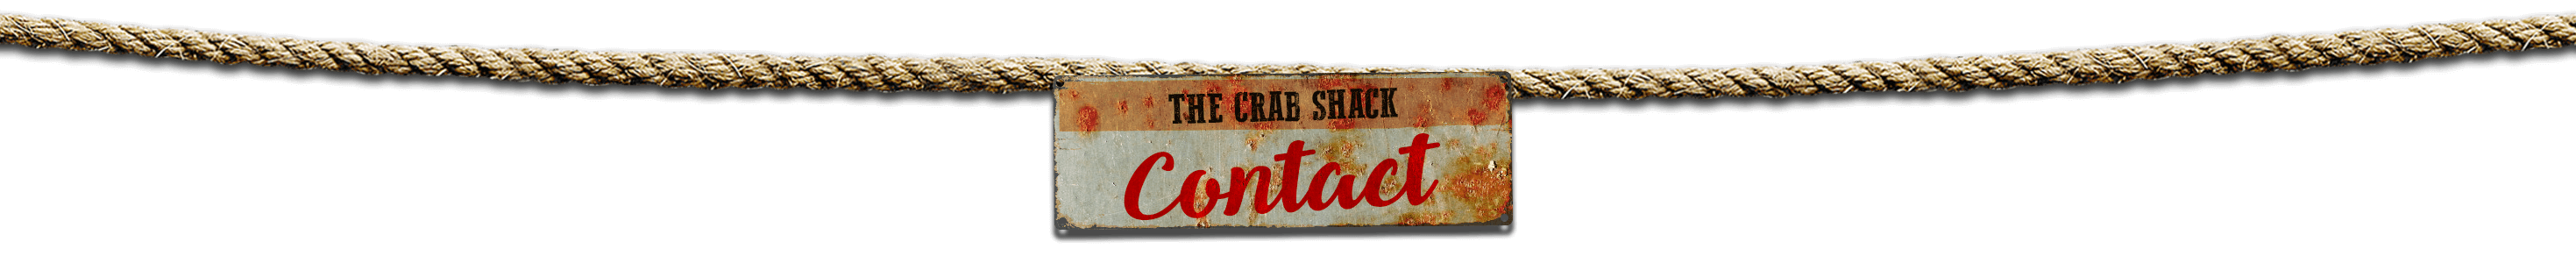 contact-the-crab-shack